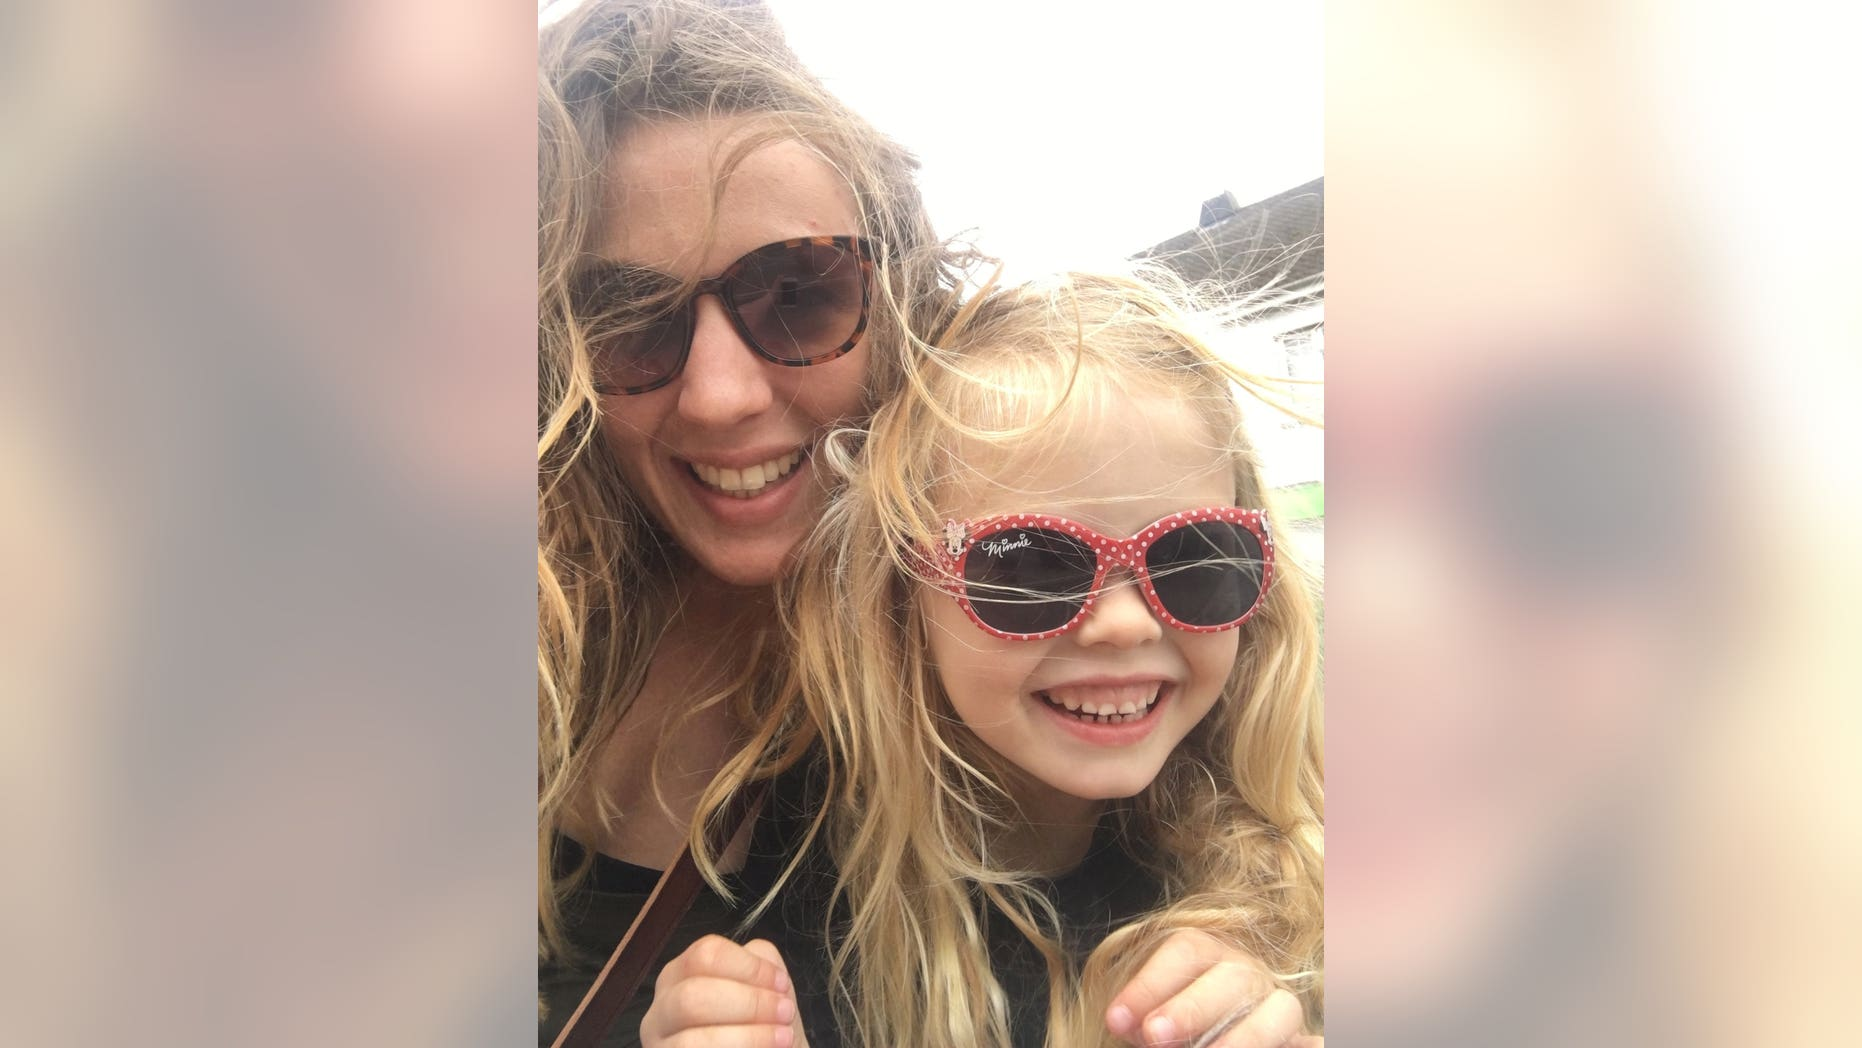 Coco Bradford, 6, who died from sepsis at the Royal Cornwall Hospital on July 31, 2017, is pictured with her mother, Rachel Bradford.&nbsp